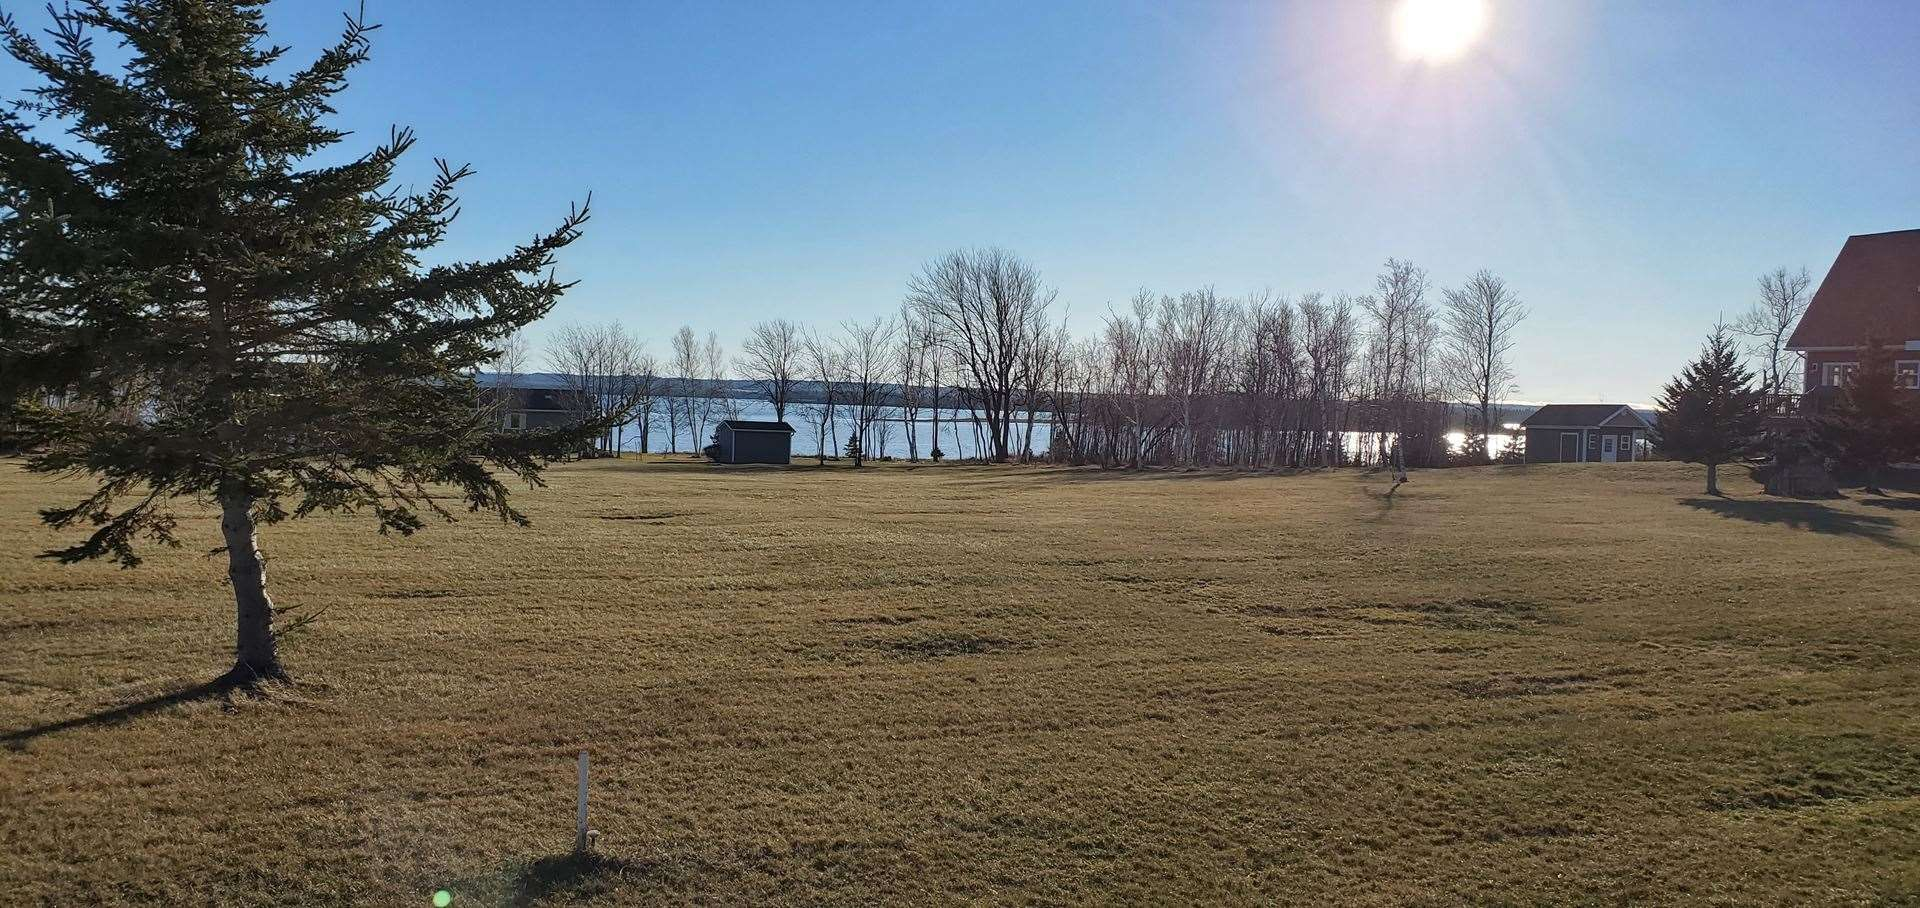 Main Photo: lot 3-11 Fox Harbour Road in Fox Harbour: 103-Malagash, Wentworth Vacant Land for sale (Northern Region)  : MLS®# 202105467